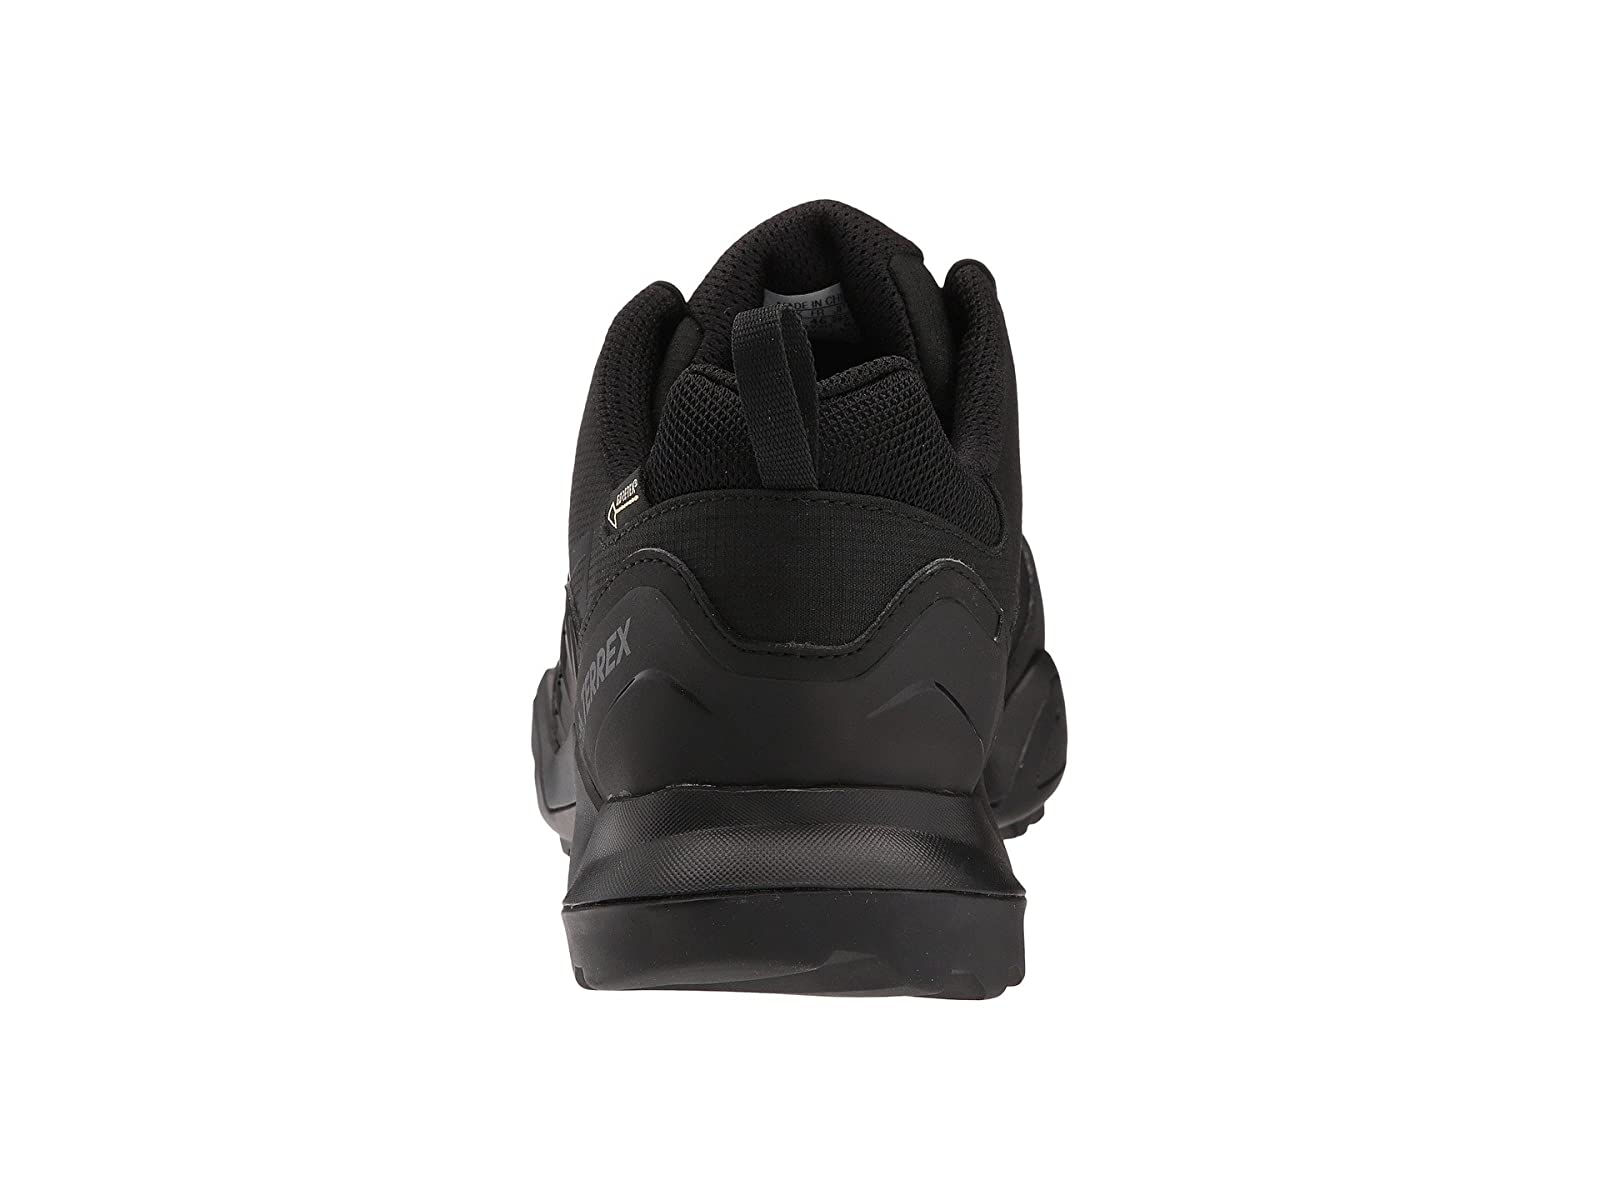 Man-039-s-Sneakers-amp-Athletic-Shoes-adidas-Outdoor-Terrex-Swift-R2-GTX thumbnail 6